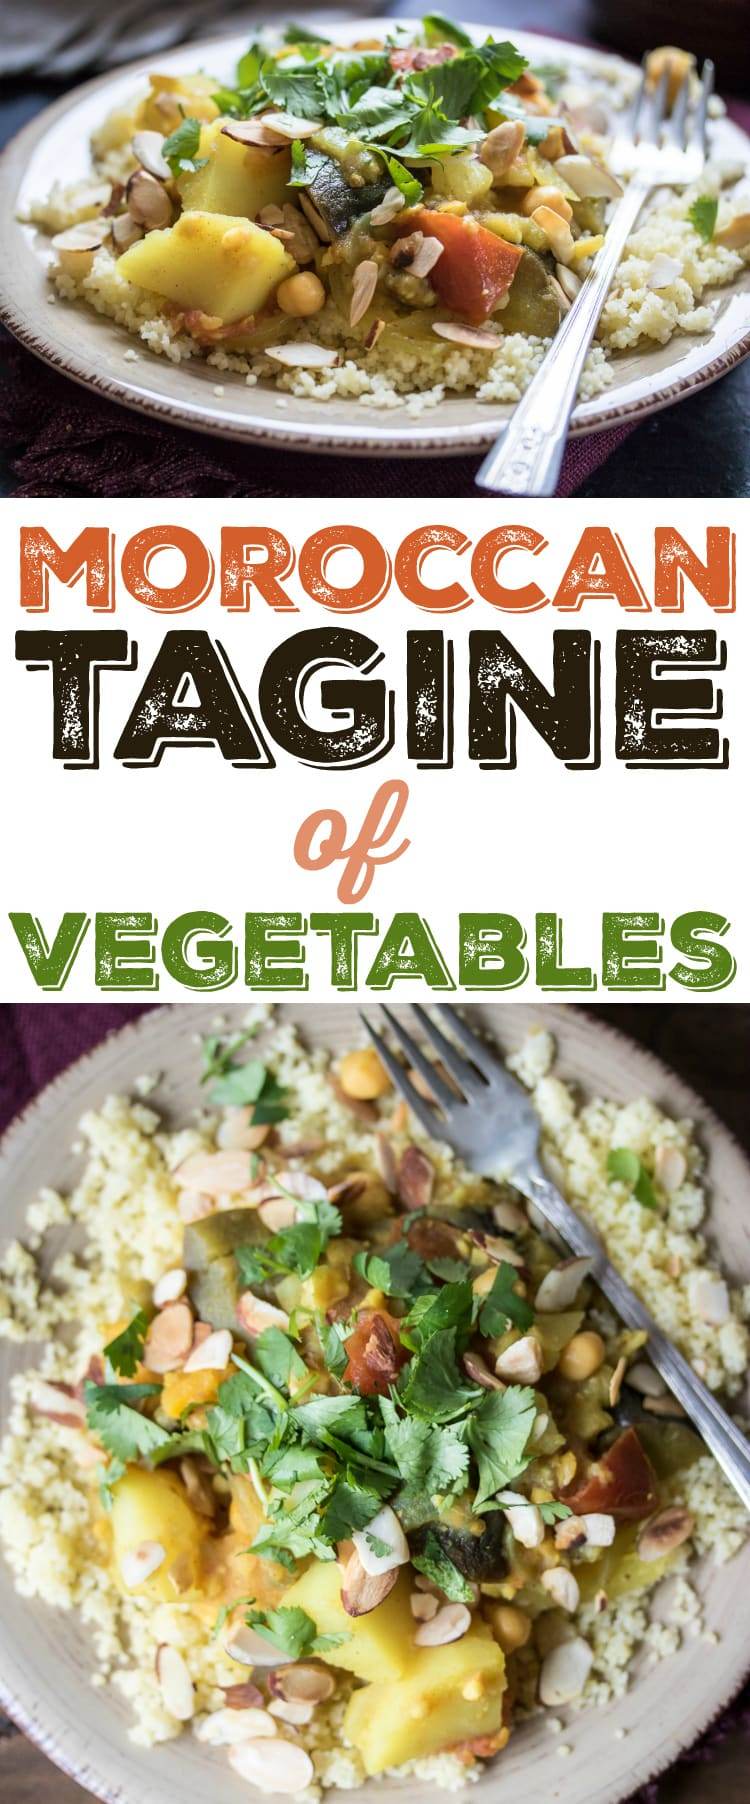 Moroccan tagine of vegetables the wanderlust kitchen a delightful and vegan tagine of eggplant potato chickpeas and forumfinder Gallery